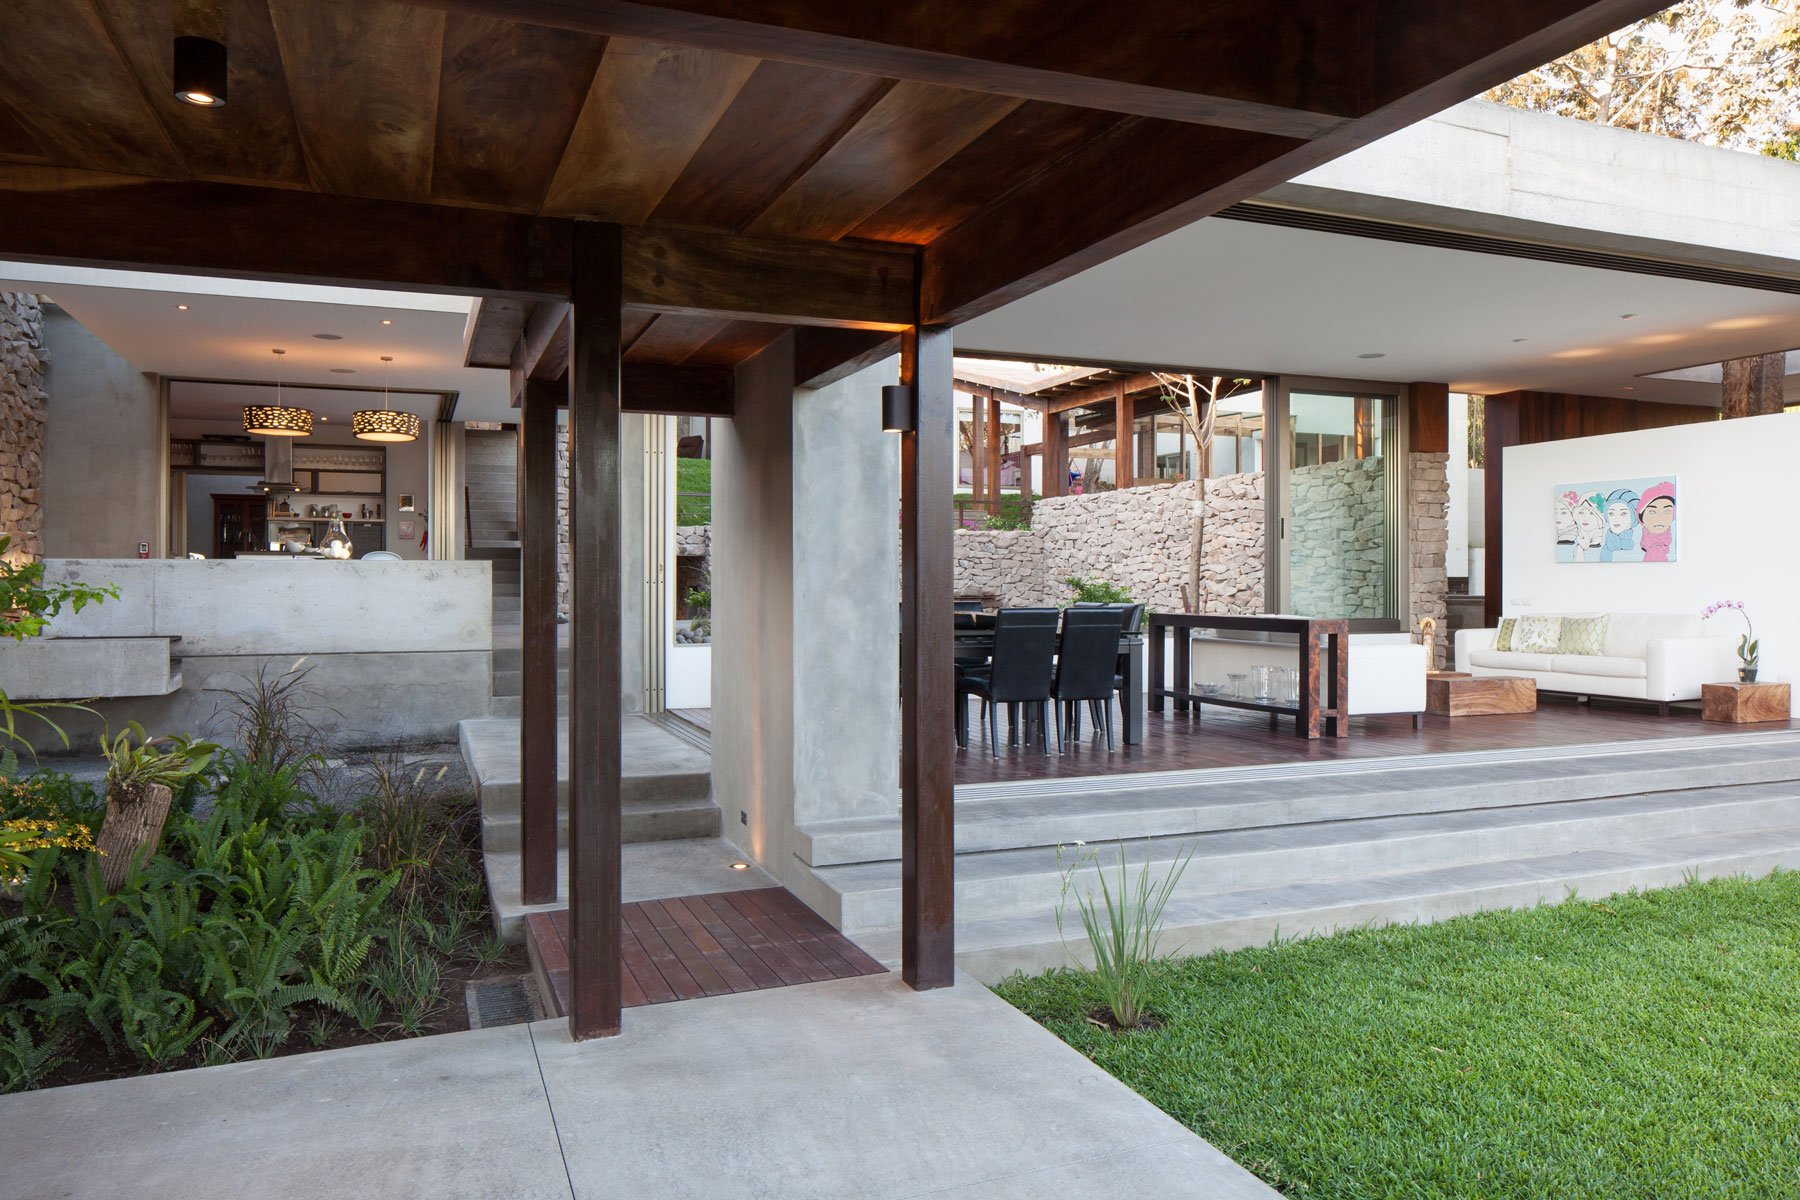 Modern rustic sensation of garden house in el salvador by for Modern house design with garden